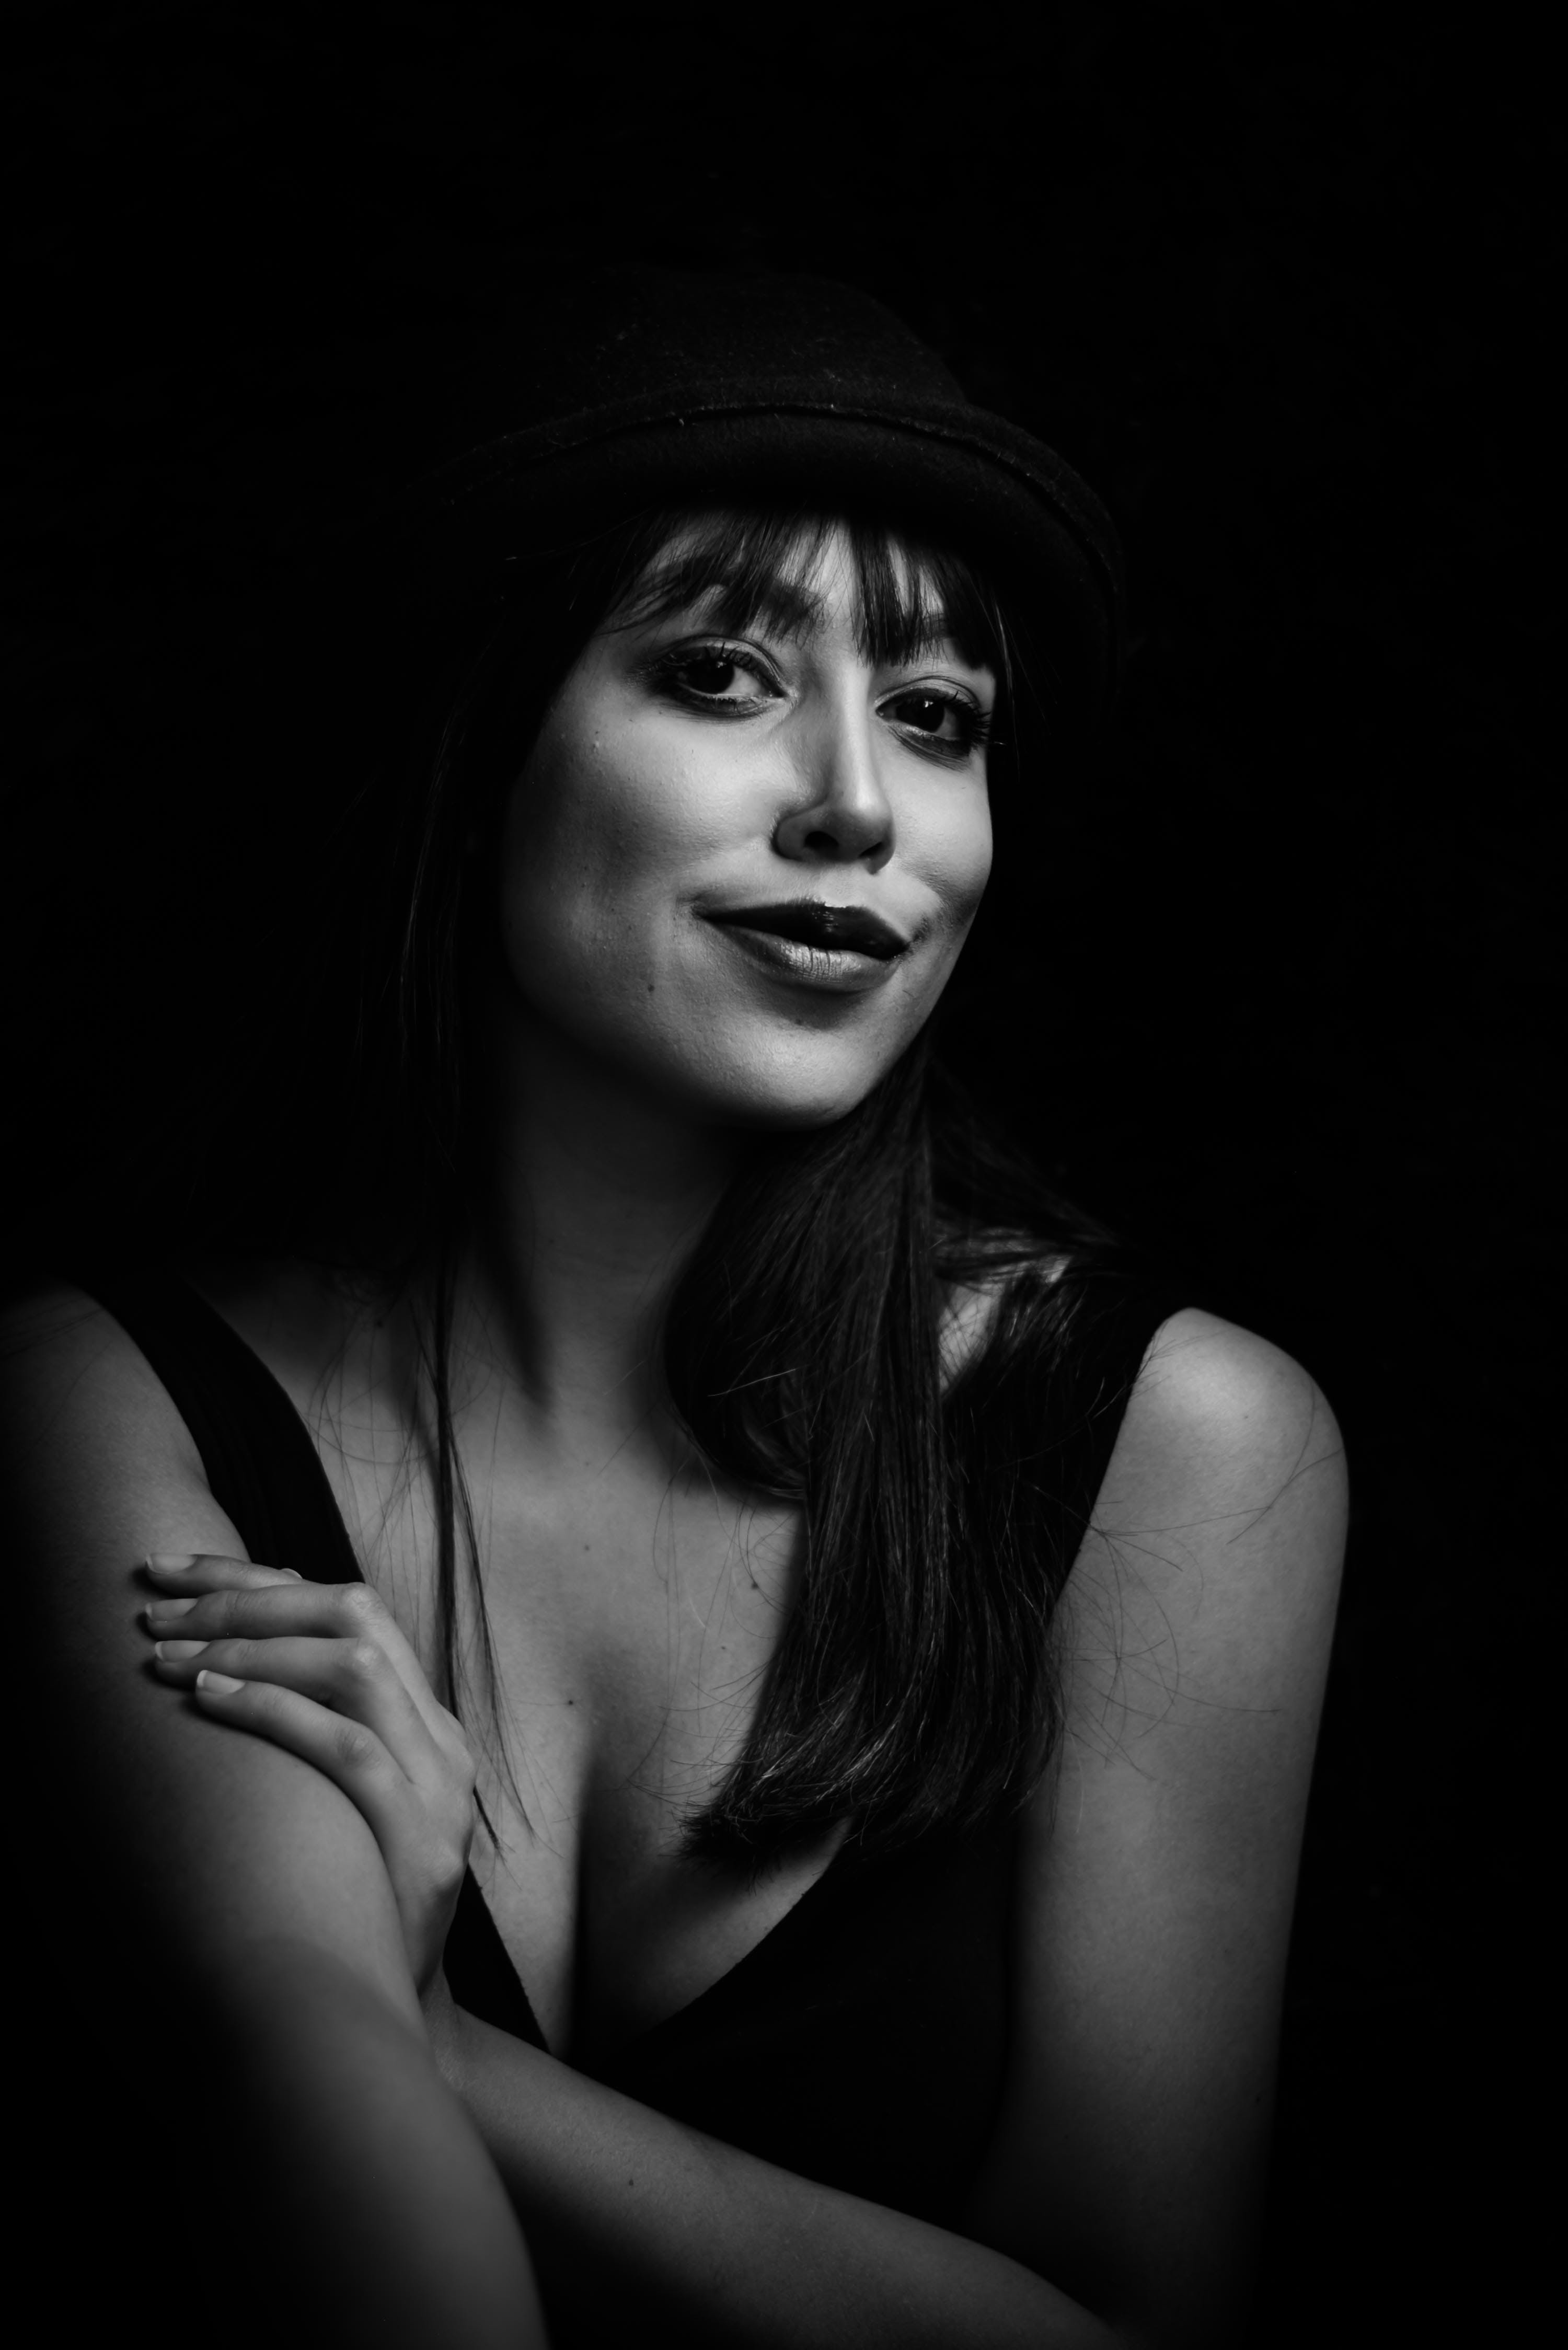 Greyscale Photo of Woman Wearing Tank Top and Hat